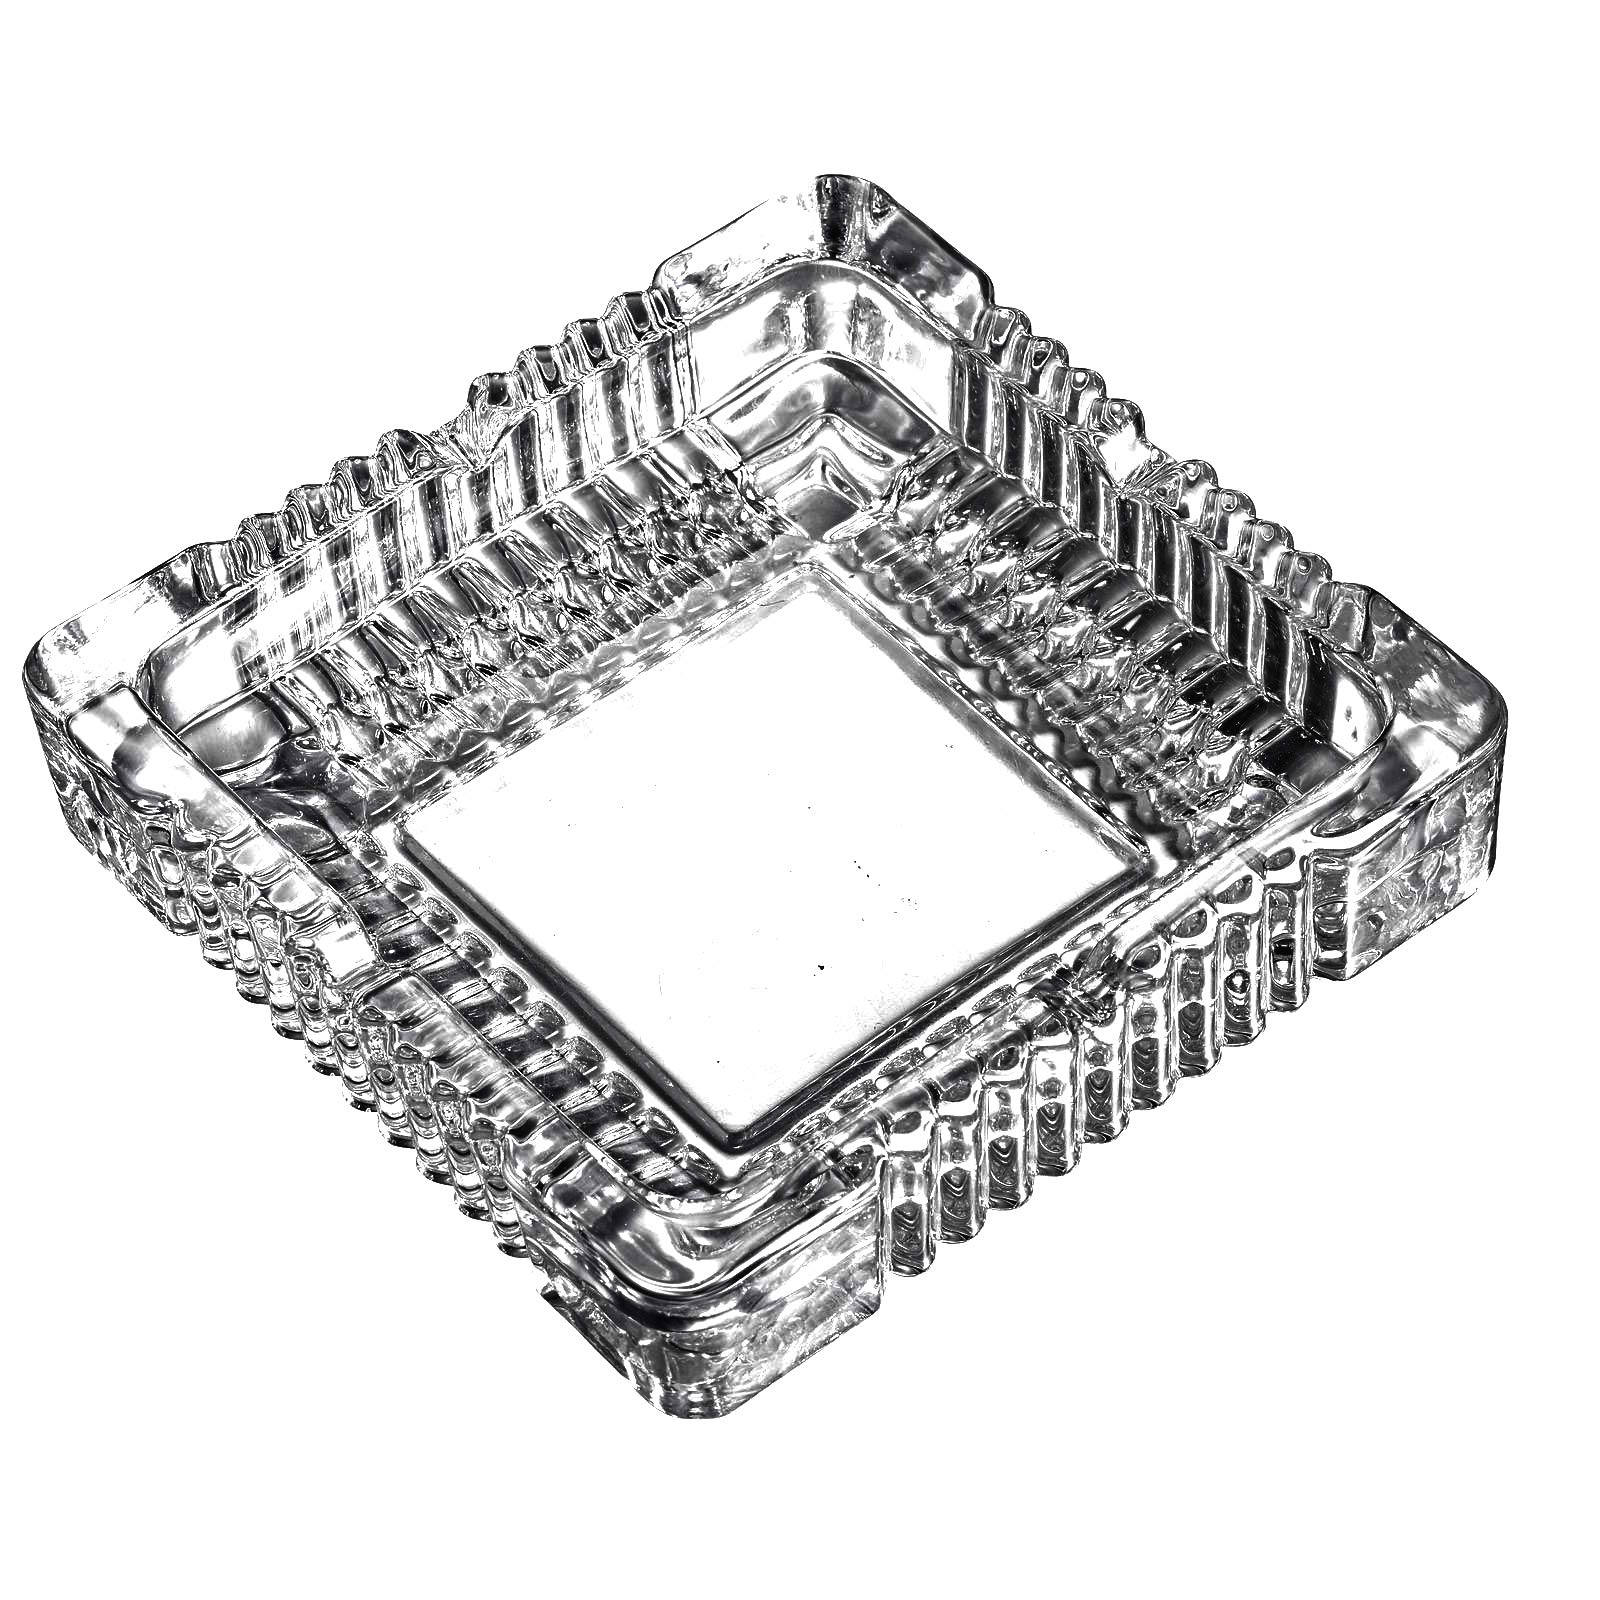 Amlong Crystal Large Classic Square Ashtray 6'' x 6'' inch.